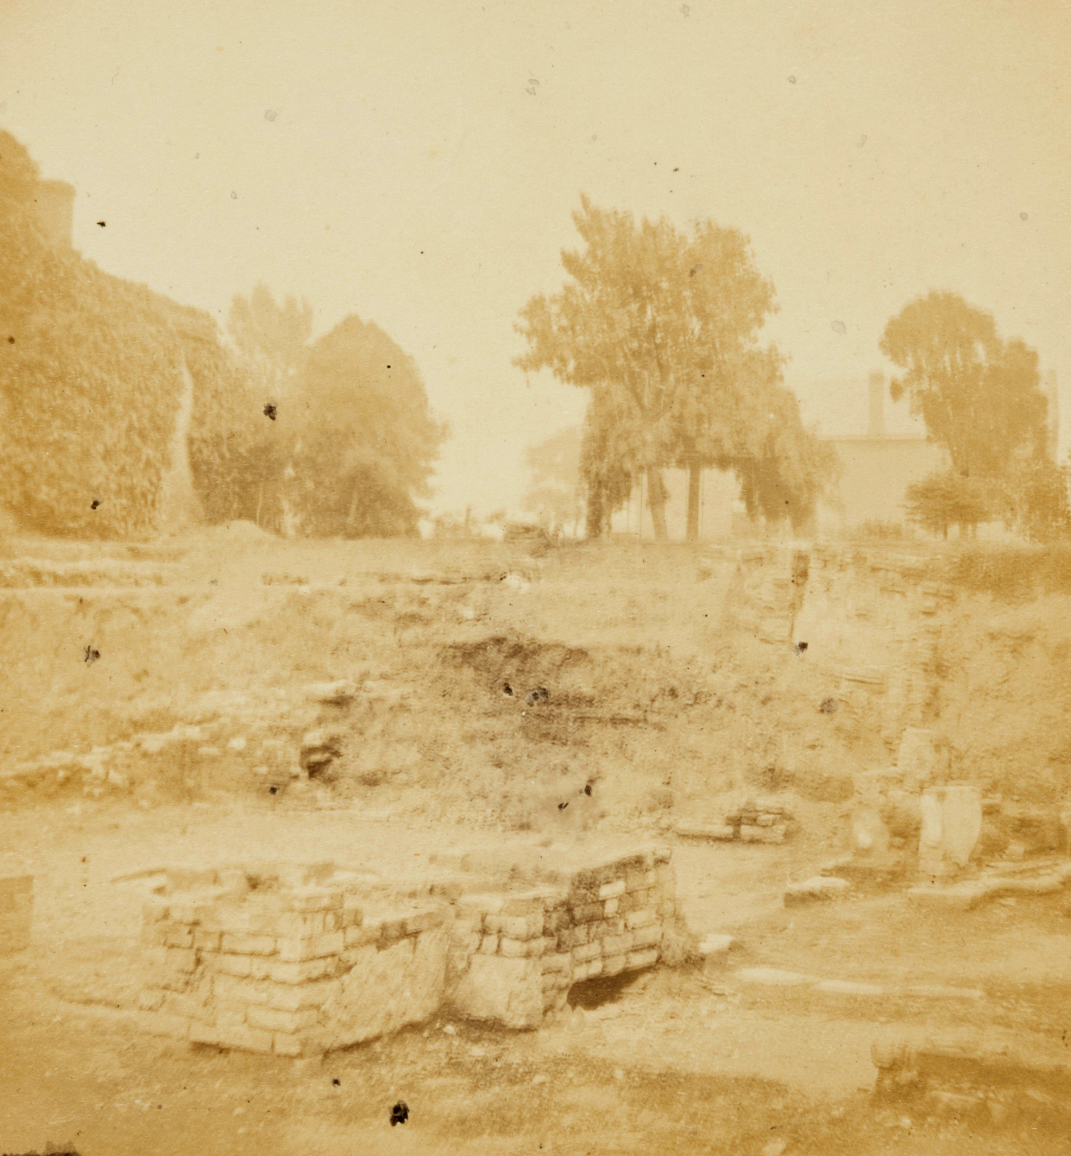 Ruins of Shakespeare's home, 'New Place', Stratford On Avon, Ernest Edwards, 1863, from albumen print